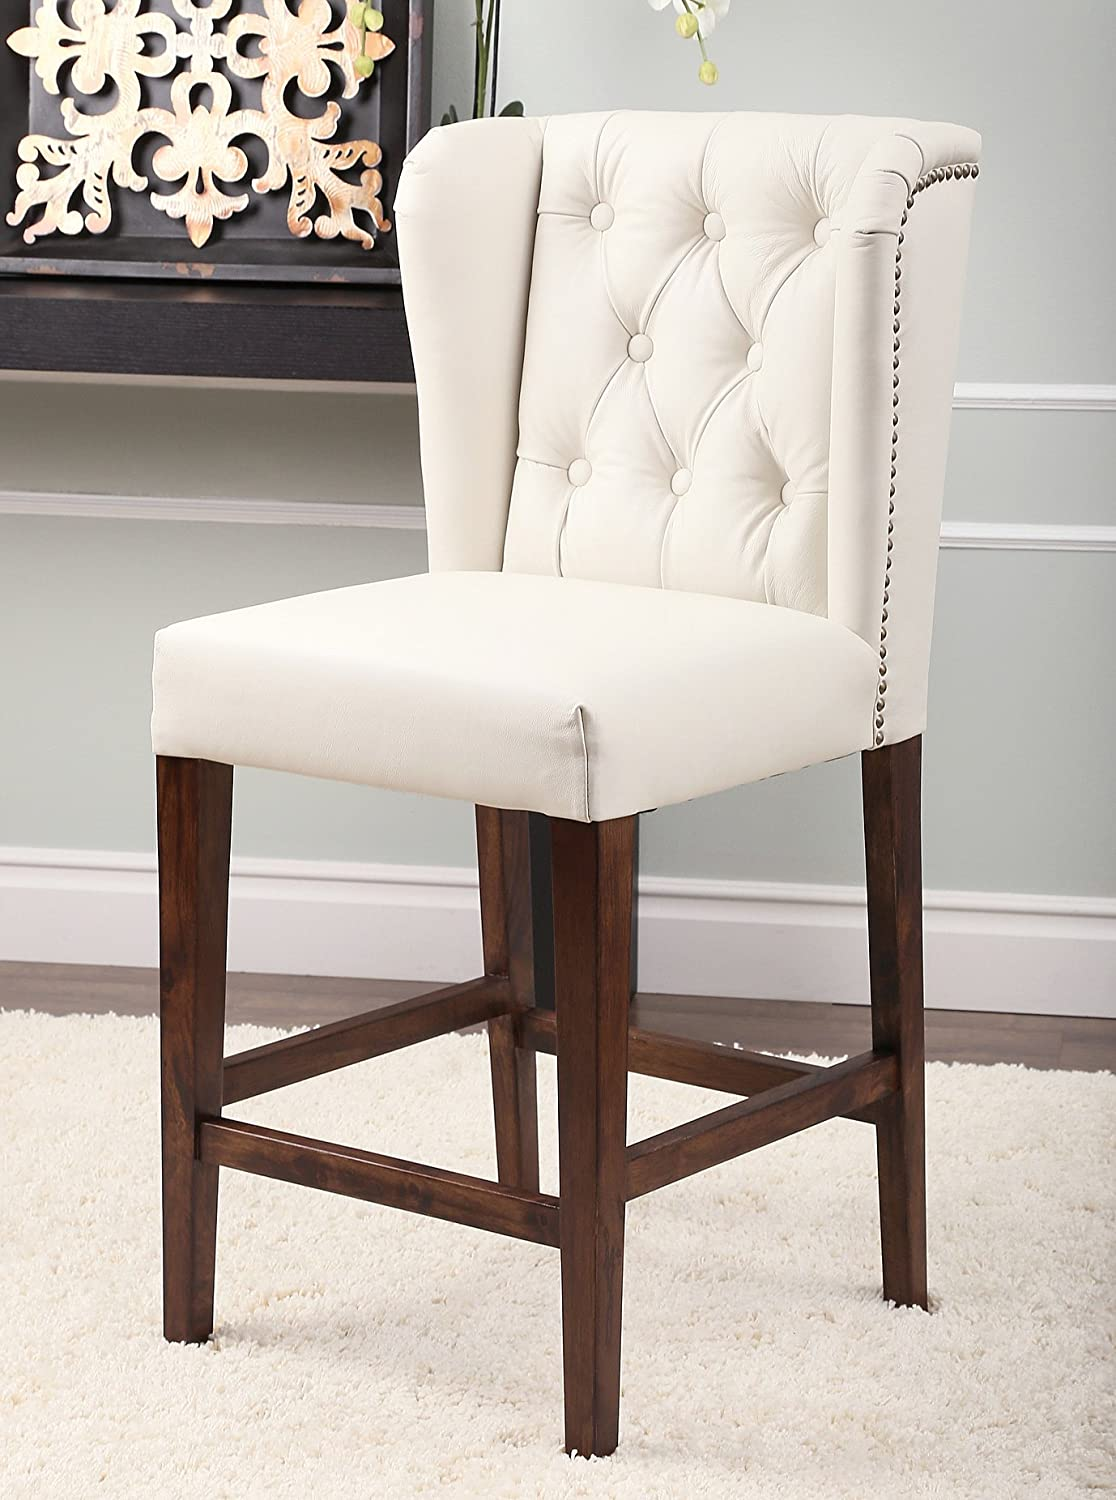 Amazon.com Abbyson Monica Pedersen  Zariah  Tufted Leather Counter Stool Ivory Home u0026 Kitchen : tufted leather bar stool - islam-shia.org